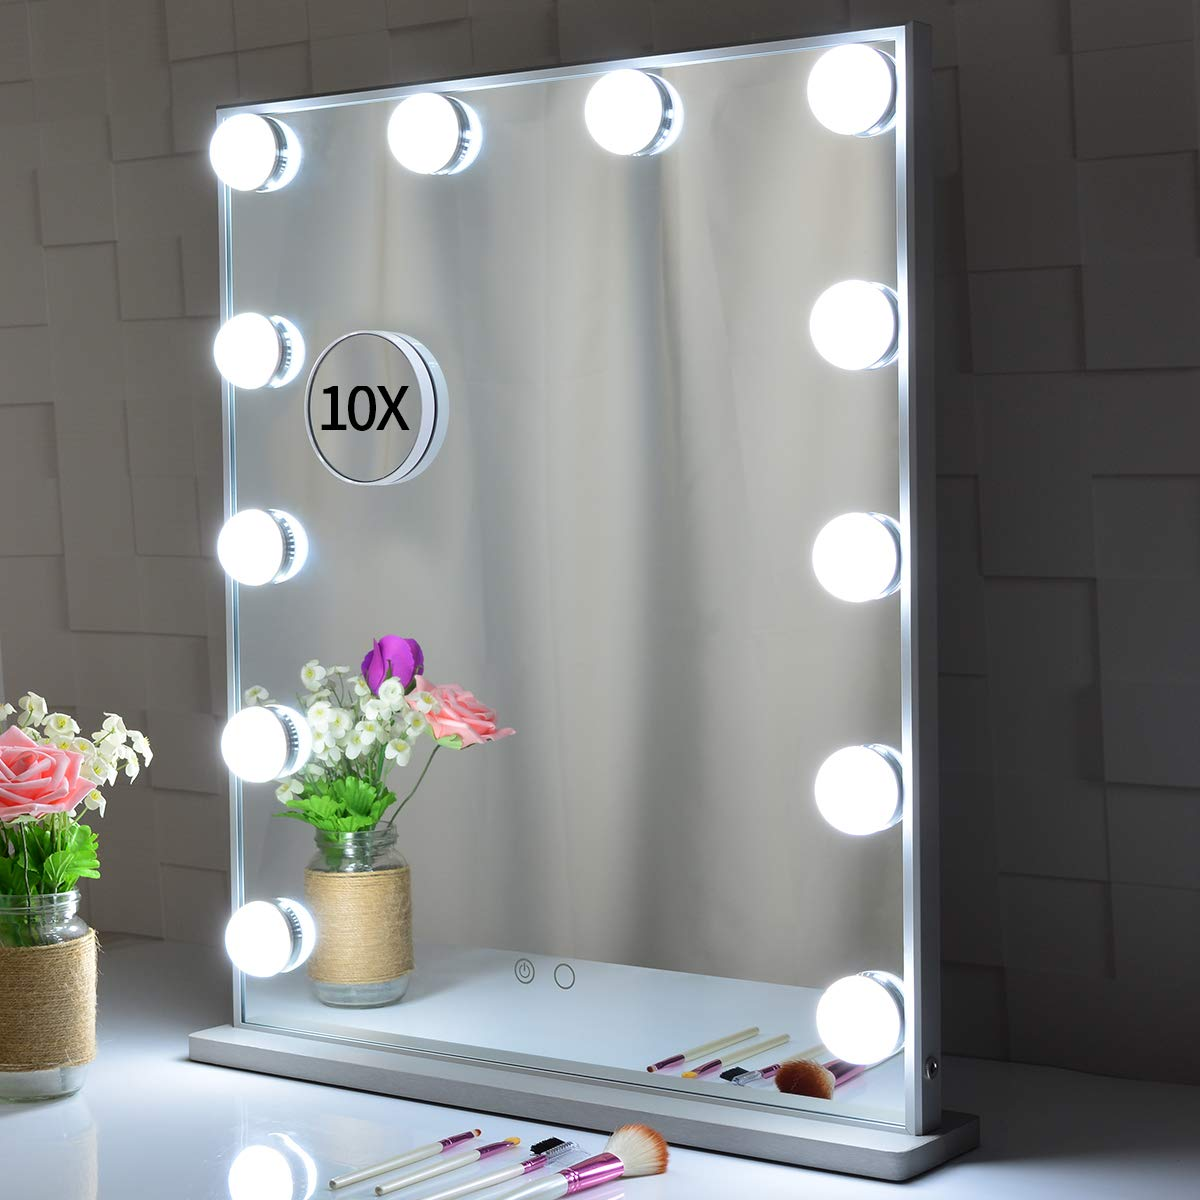 Large Hollywood Vanity Mirror with Lights 62x51.2cm, Tabletop or Wall Mounted Makeup Dressing Beauty Lighted Vanity Mirrors,with a Detachable 10X Magnification Spot Cosmetic Mirror Included(Silver) by BEAUTME